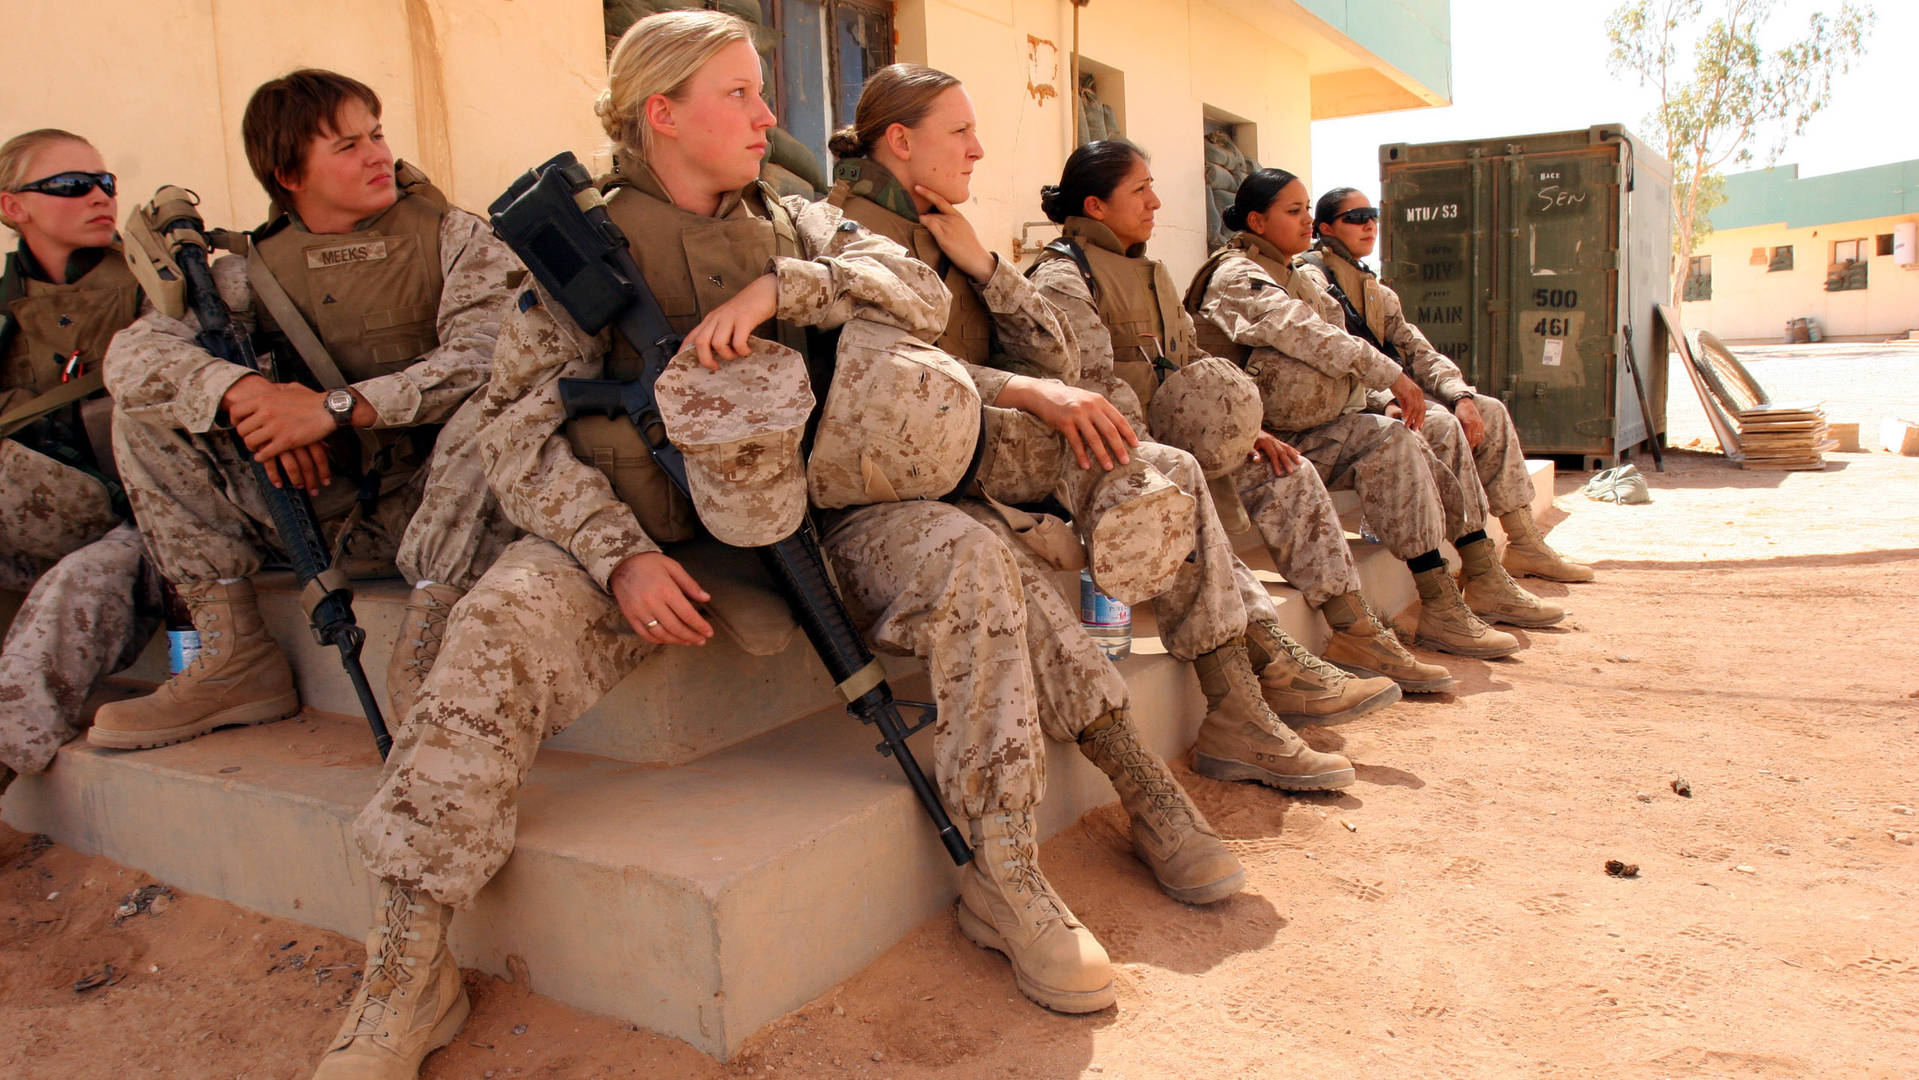 an examination of the role of women in military Today, more than 200,000 women serve in the united states military by removing the ground combat ban on women, the us military hopes to make all combat roles gender neutral this means that if a soldier—male or female—meets the physical requirements necessary for a combat role, he or she will be allowed to serve in that role.